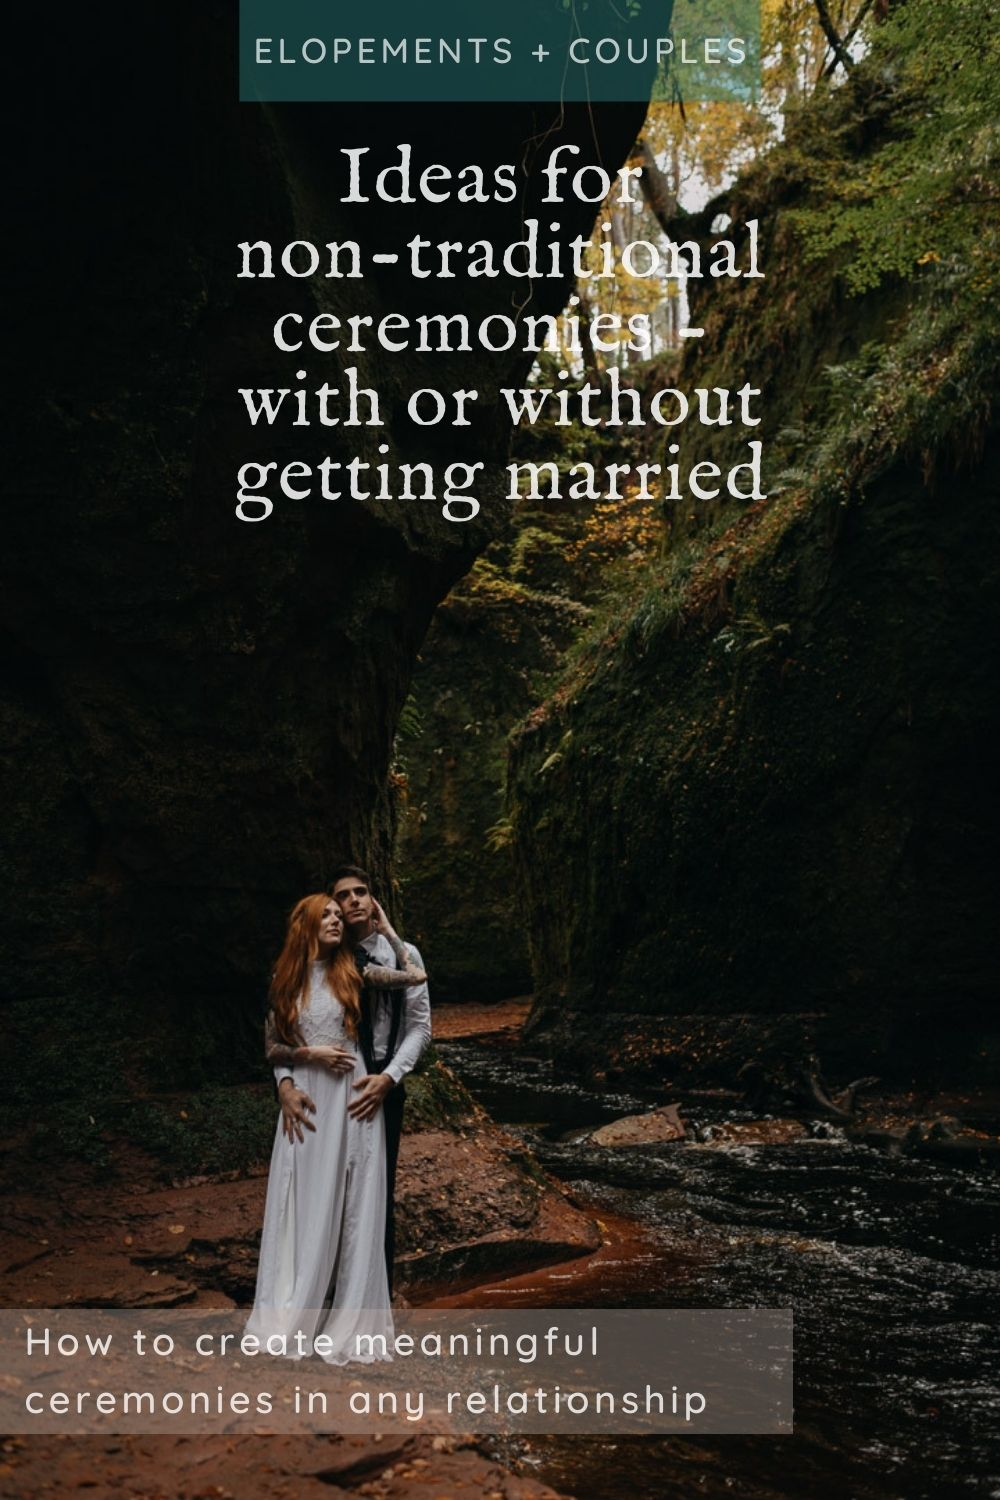 Non-traditional ceremonies for all couples - married or unmarried